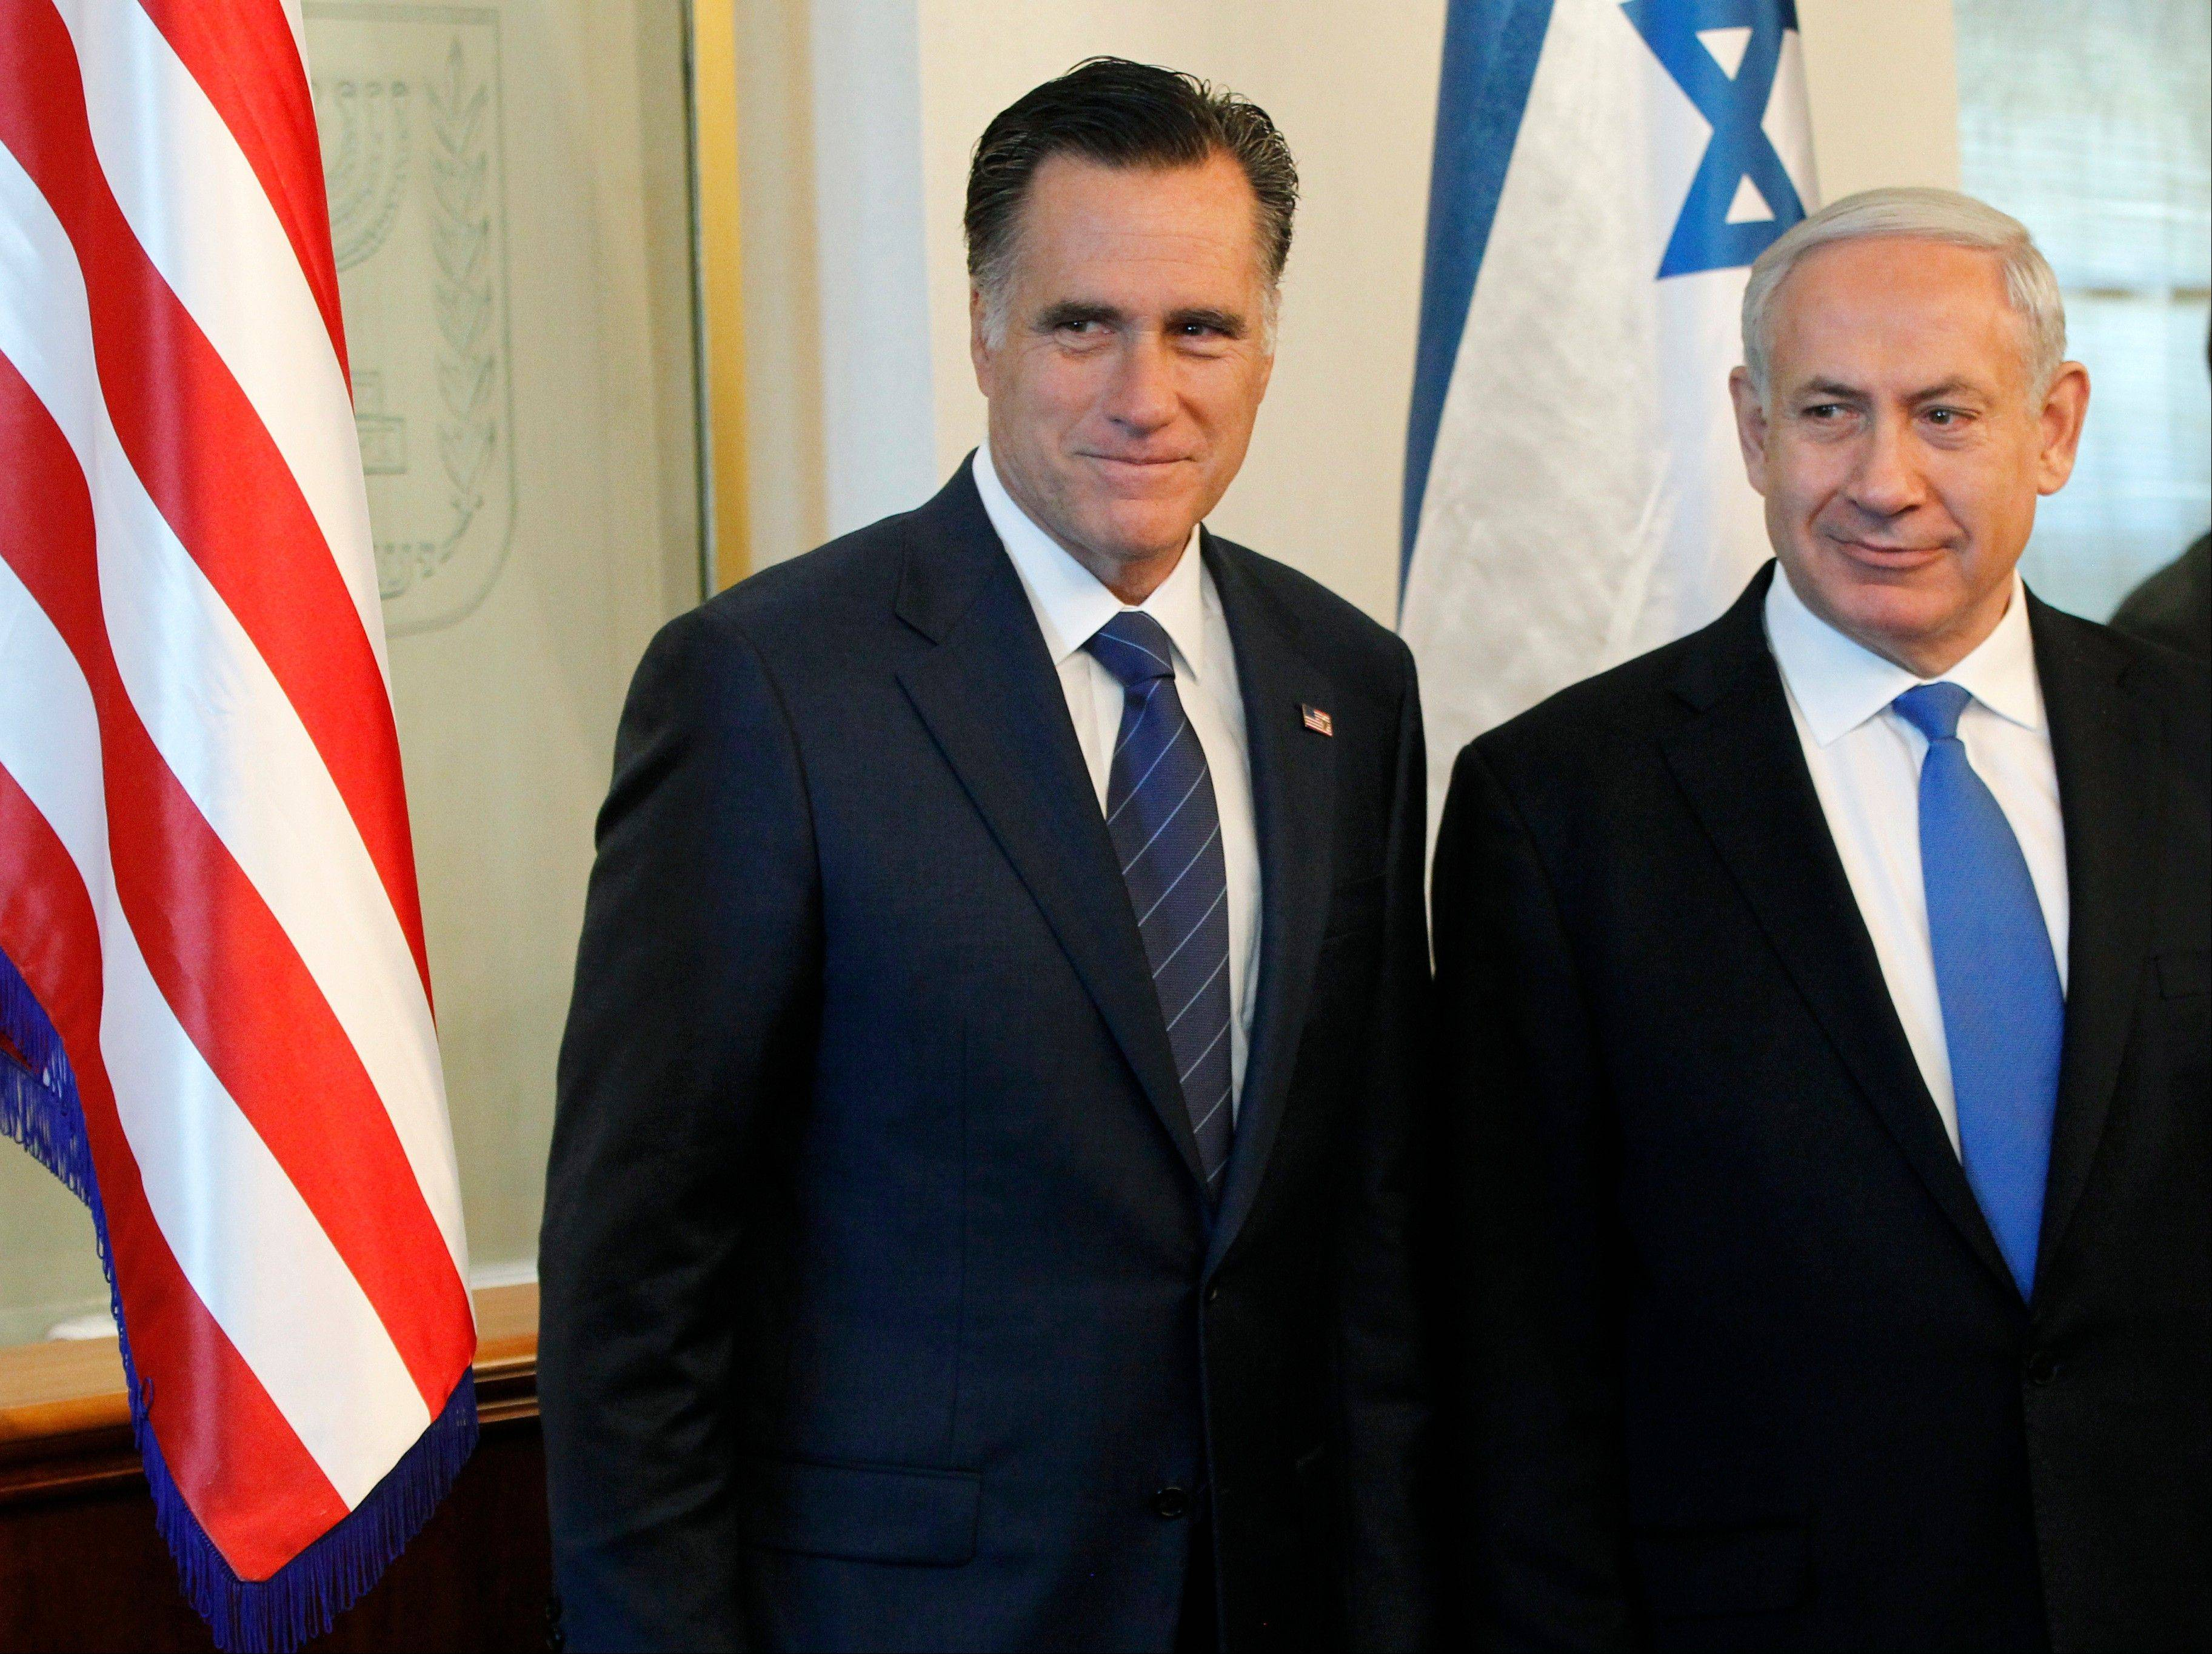 Republican presidential candidate and former Massachusetts Gov. Mitt Romney meets with Israel's Prime Minister Benjamin Netanyahu in Jerusalem. It is a taboo for Israeli leaders to give even the slightest hint of favoritism in politics in the United States, Israel's closest ally. So some Israelis are squirming over a perception that Prime Minister Benjamin Netanyahu is siding with Republican Mitt Romney in the U.S. presidential race.